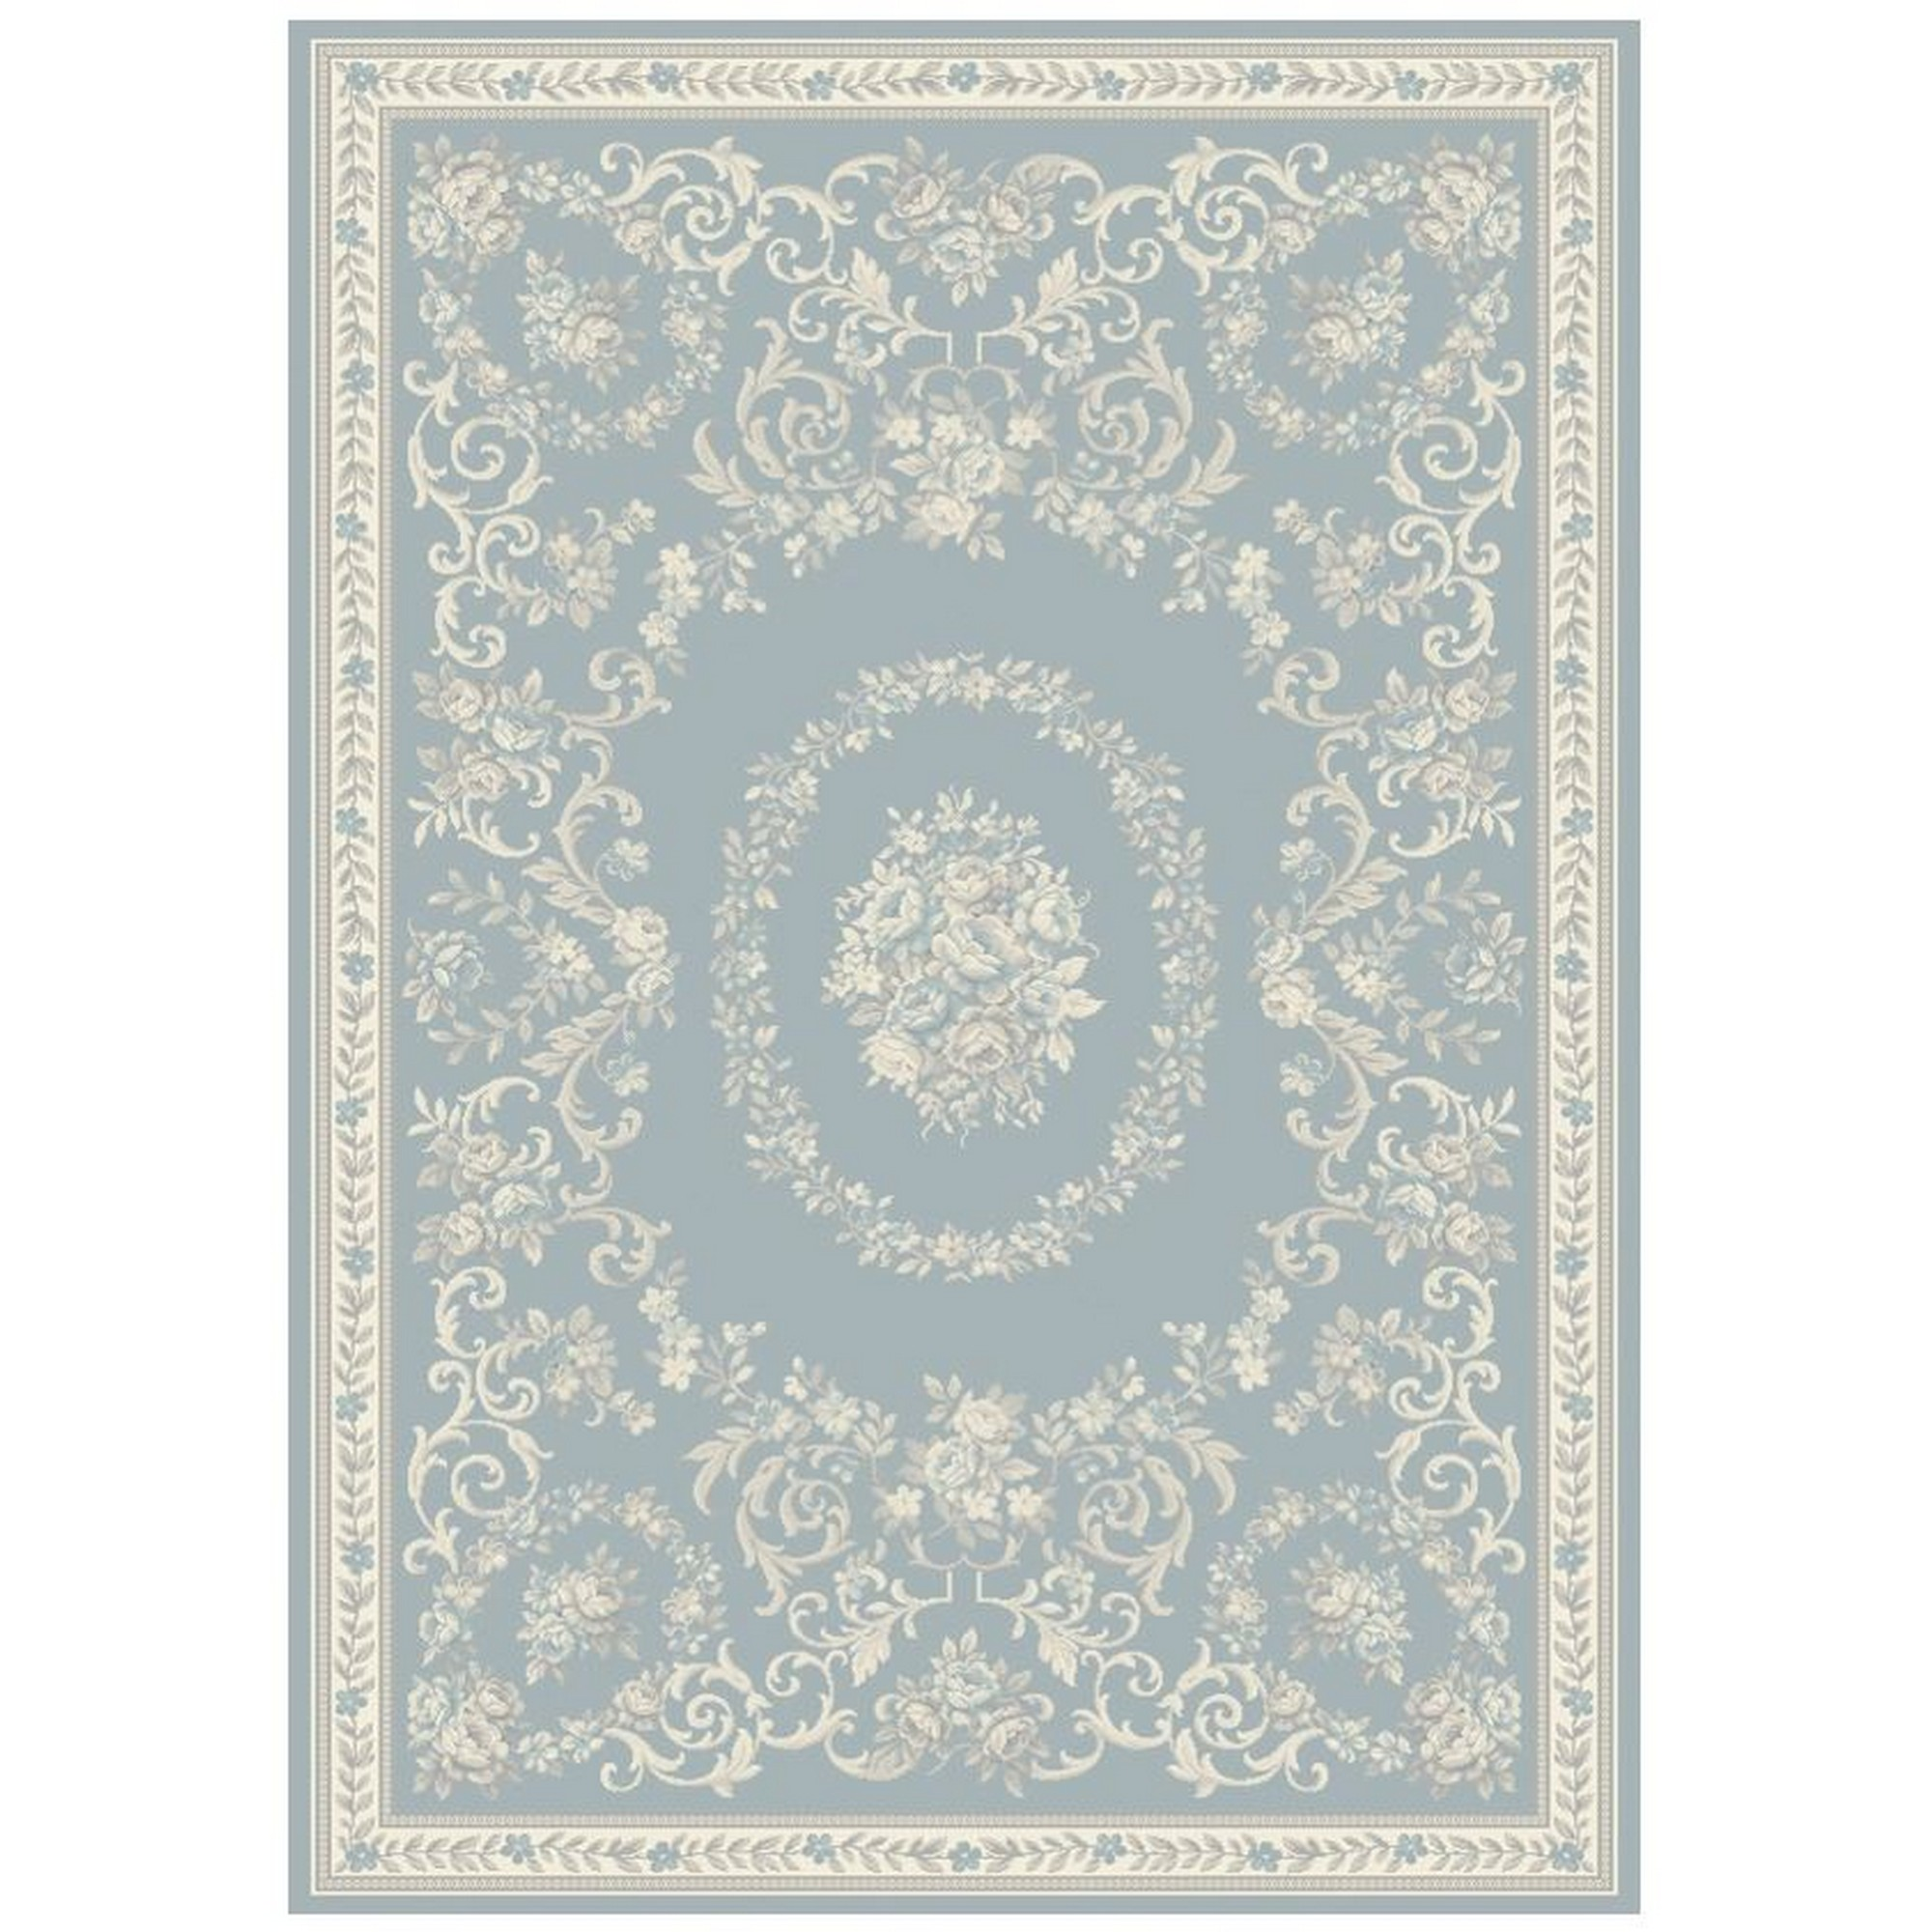 Echo Dauphin Rugs EC10 in Aqua